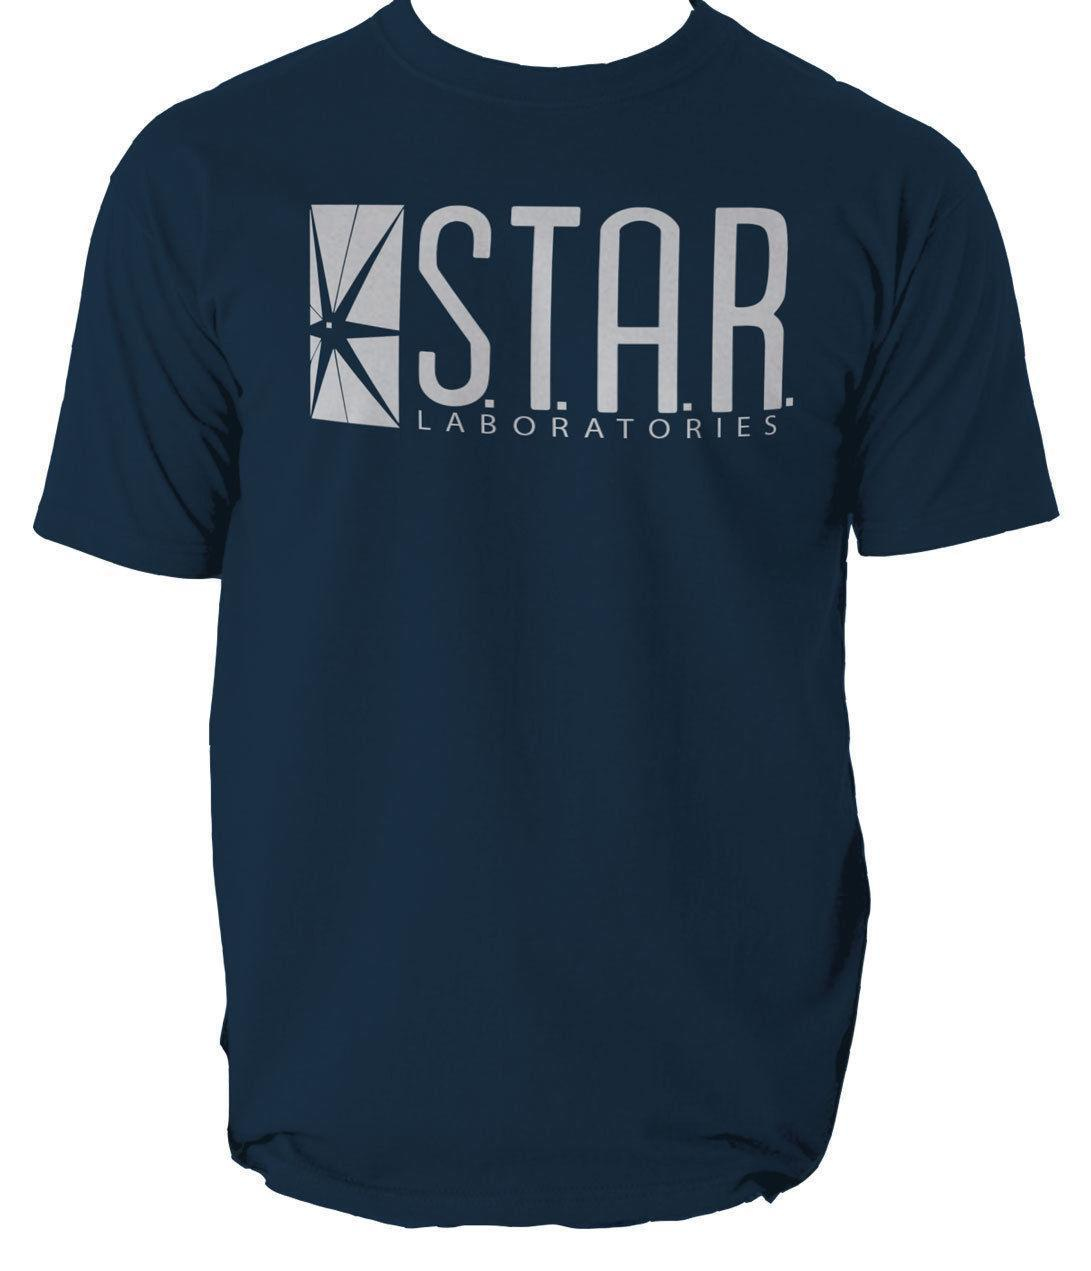 d06ccac59 STAR Laboratories T Shirt Top The Flash Labs S.T.A.R ALL SIZES GIFT  Printable T Shirts T Shrits From Yuxin10, $13.8| DHgate.Com